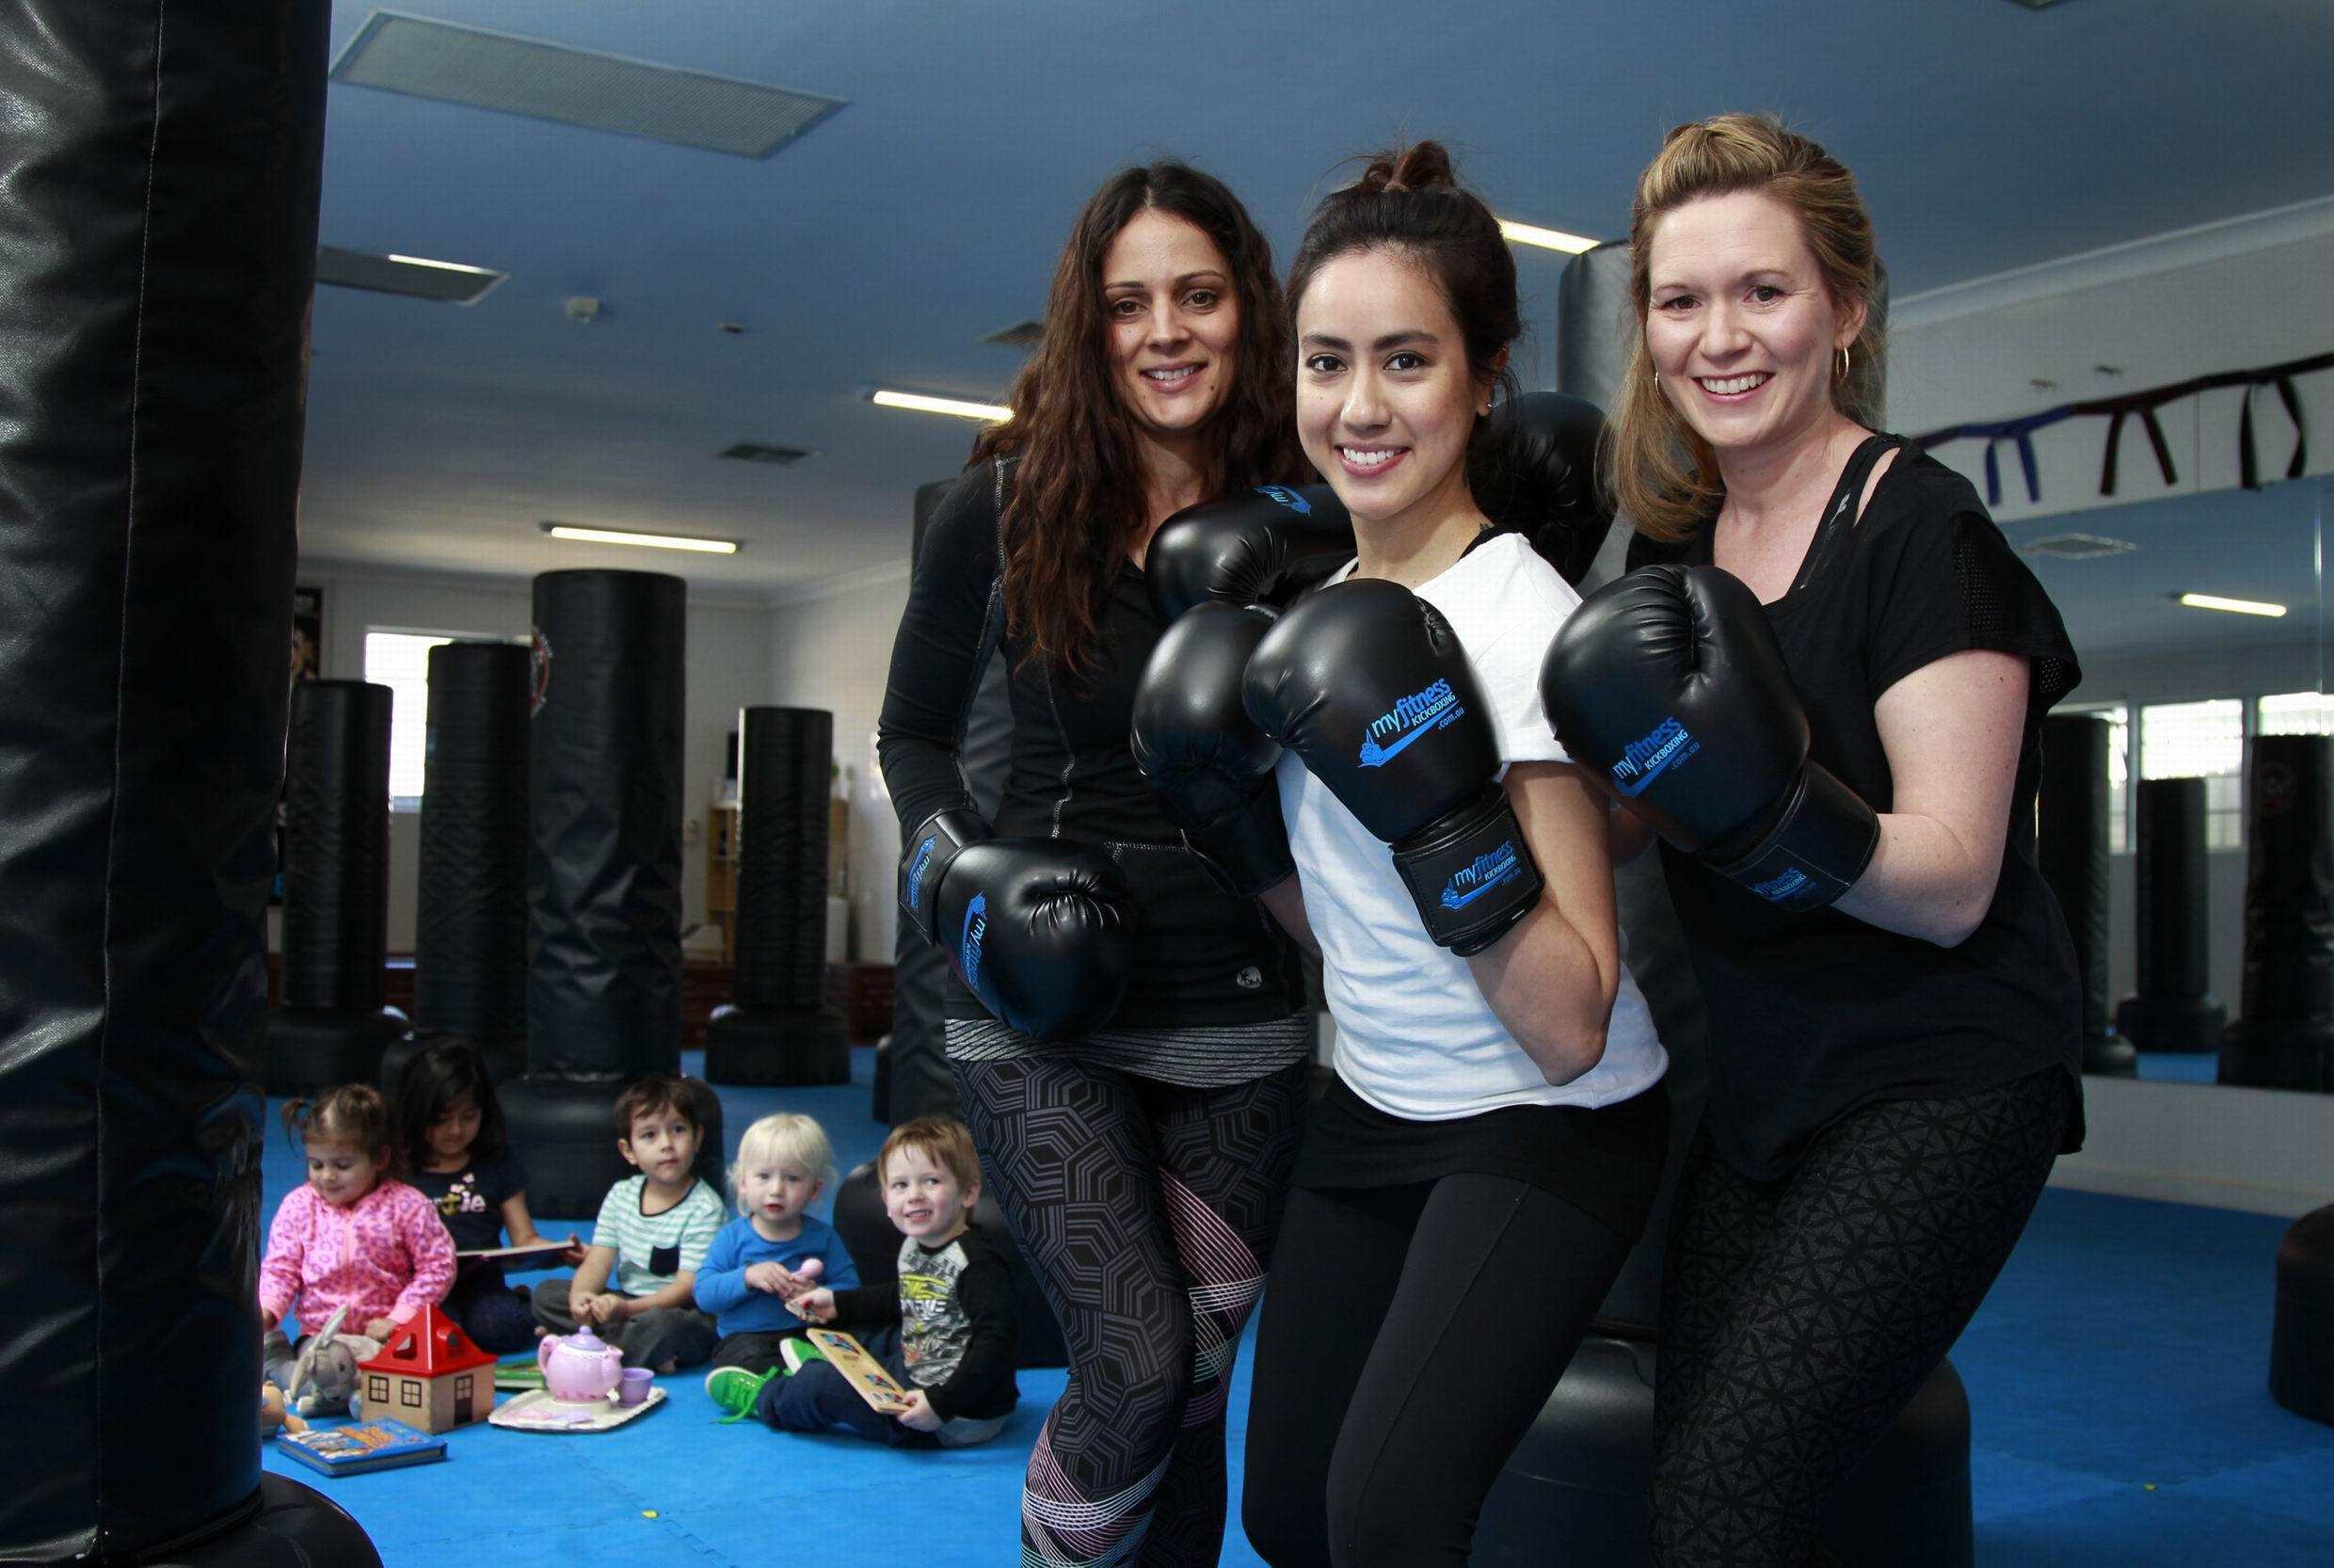 My Fitness Kickboxing instructor Gillian Sarangapany (centre) with Natalie Crockett (left) and Sandra Kirou - the three mothers' children playing in the background (L-R) Zoe Crockett (3), Clara Varley (6), Caleb Varley (4), Alex Kirou (16 months) and John Kirou (3). Picture: Marie Nirme.